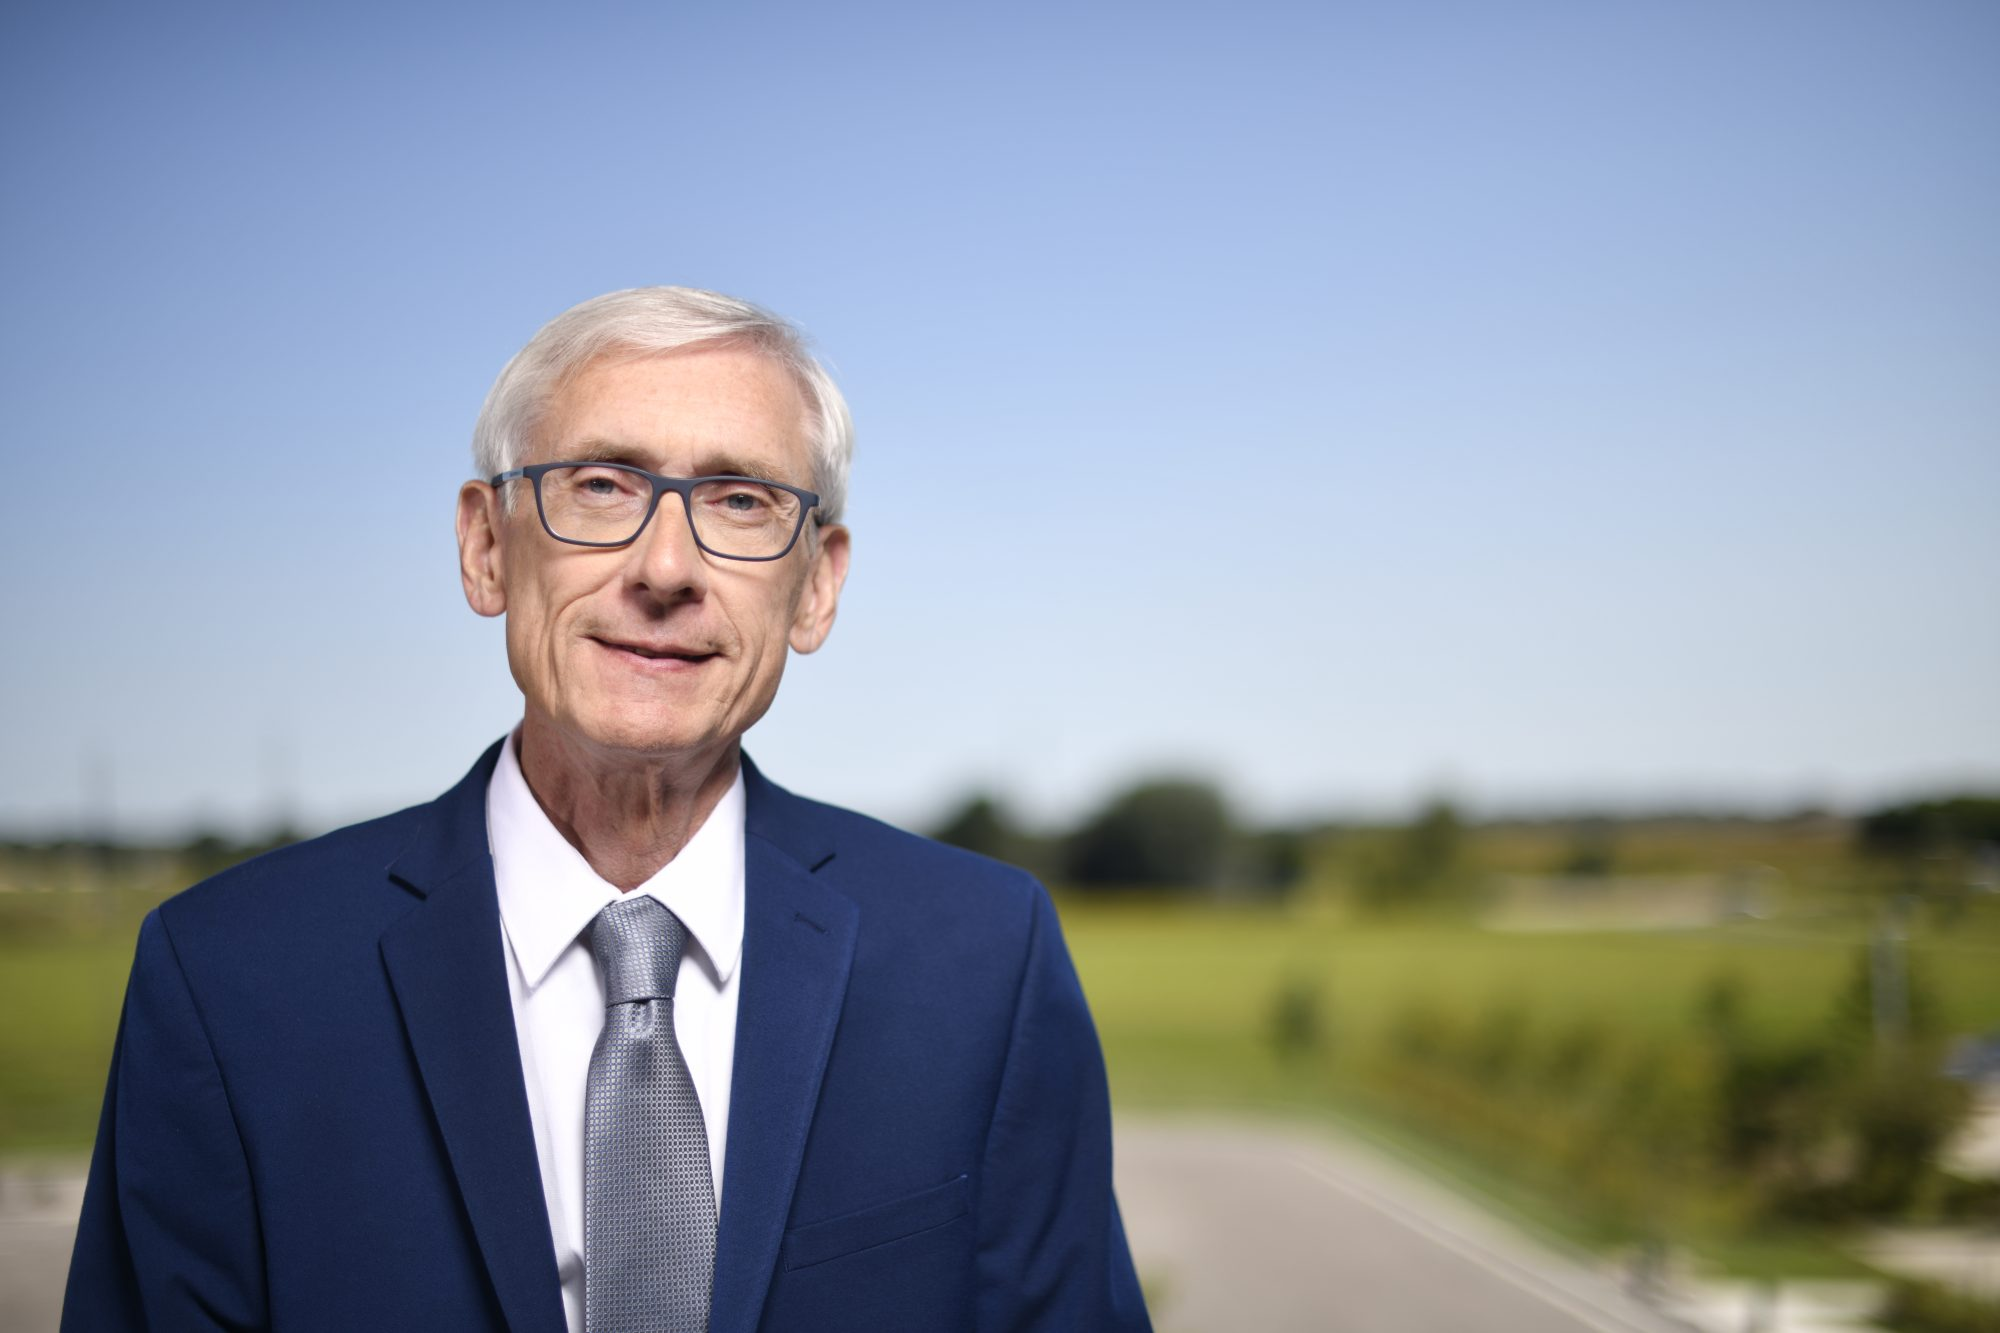 Tony Evers. Photo from the State of Wisconsin.